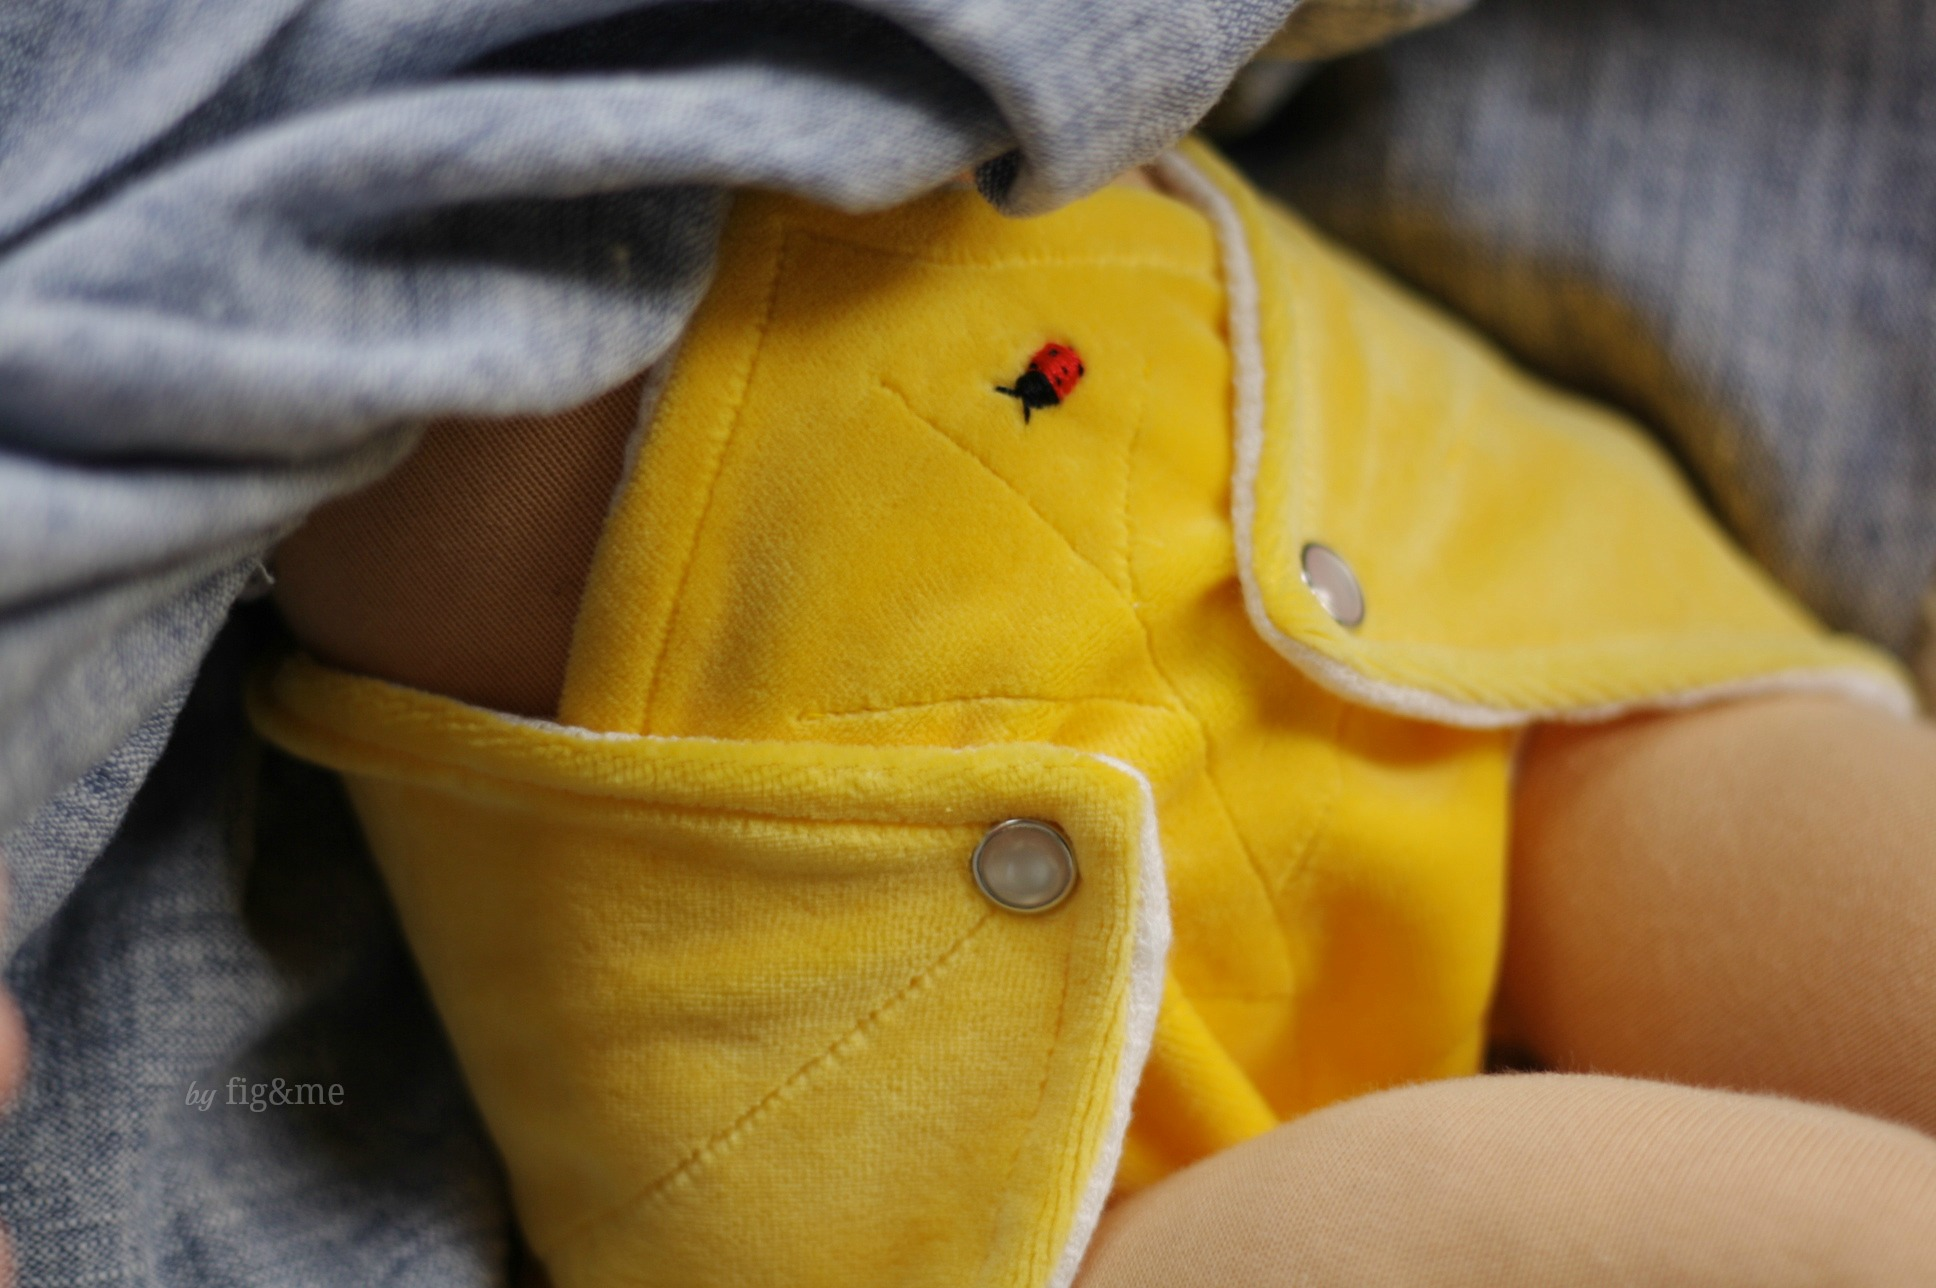 A ladybug on your diaper!